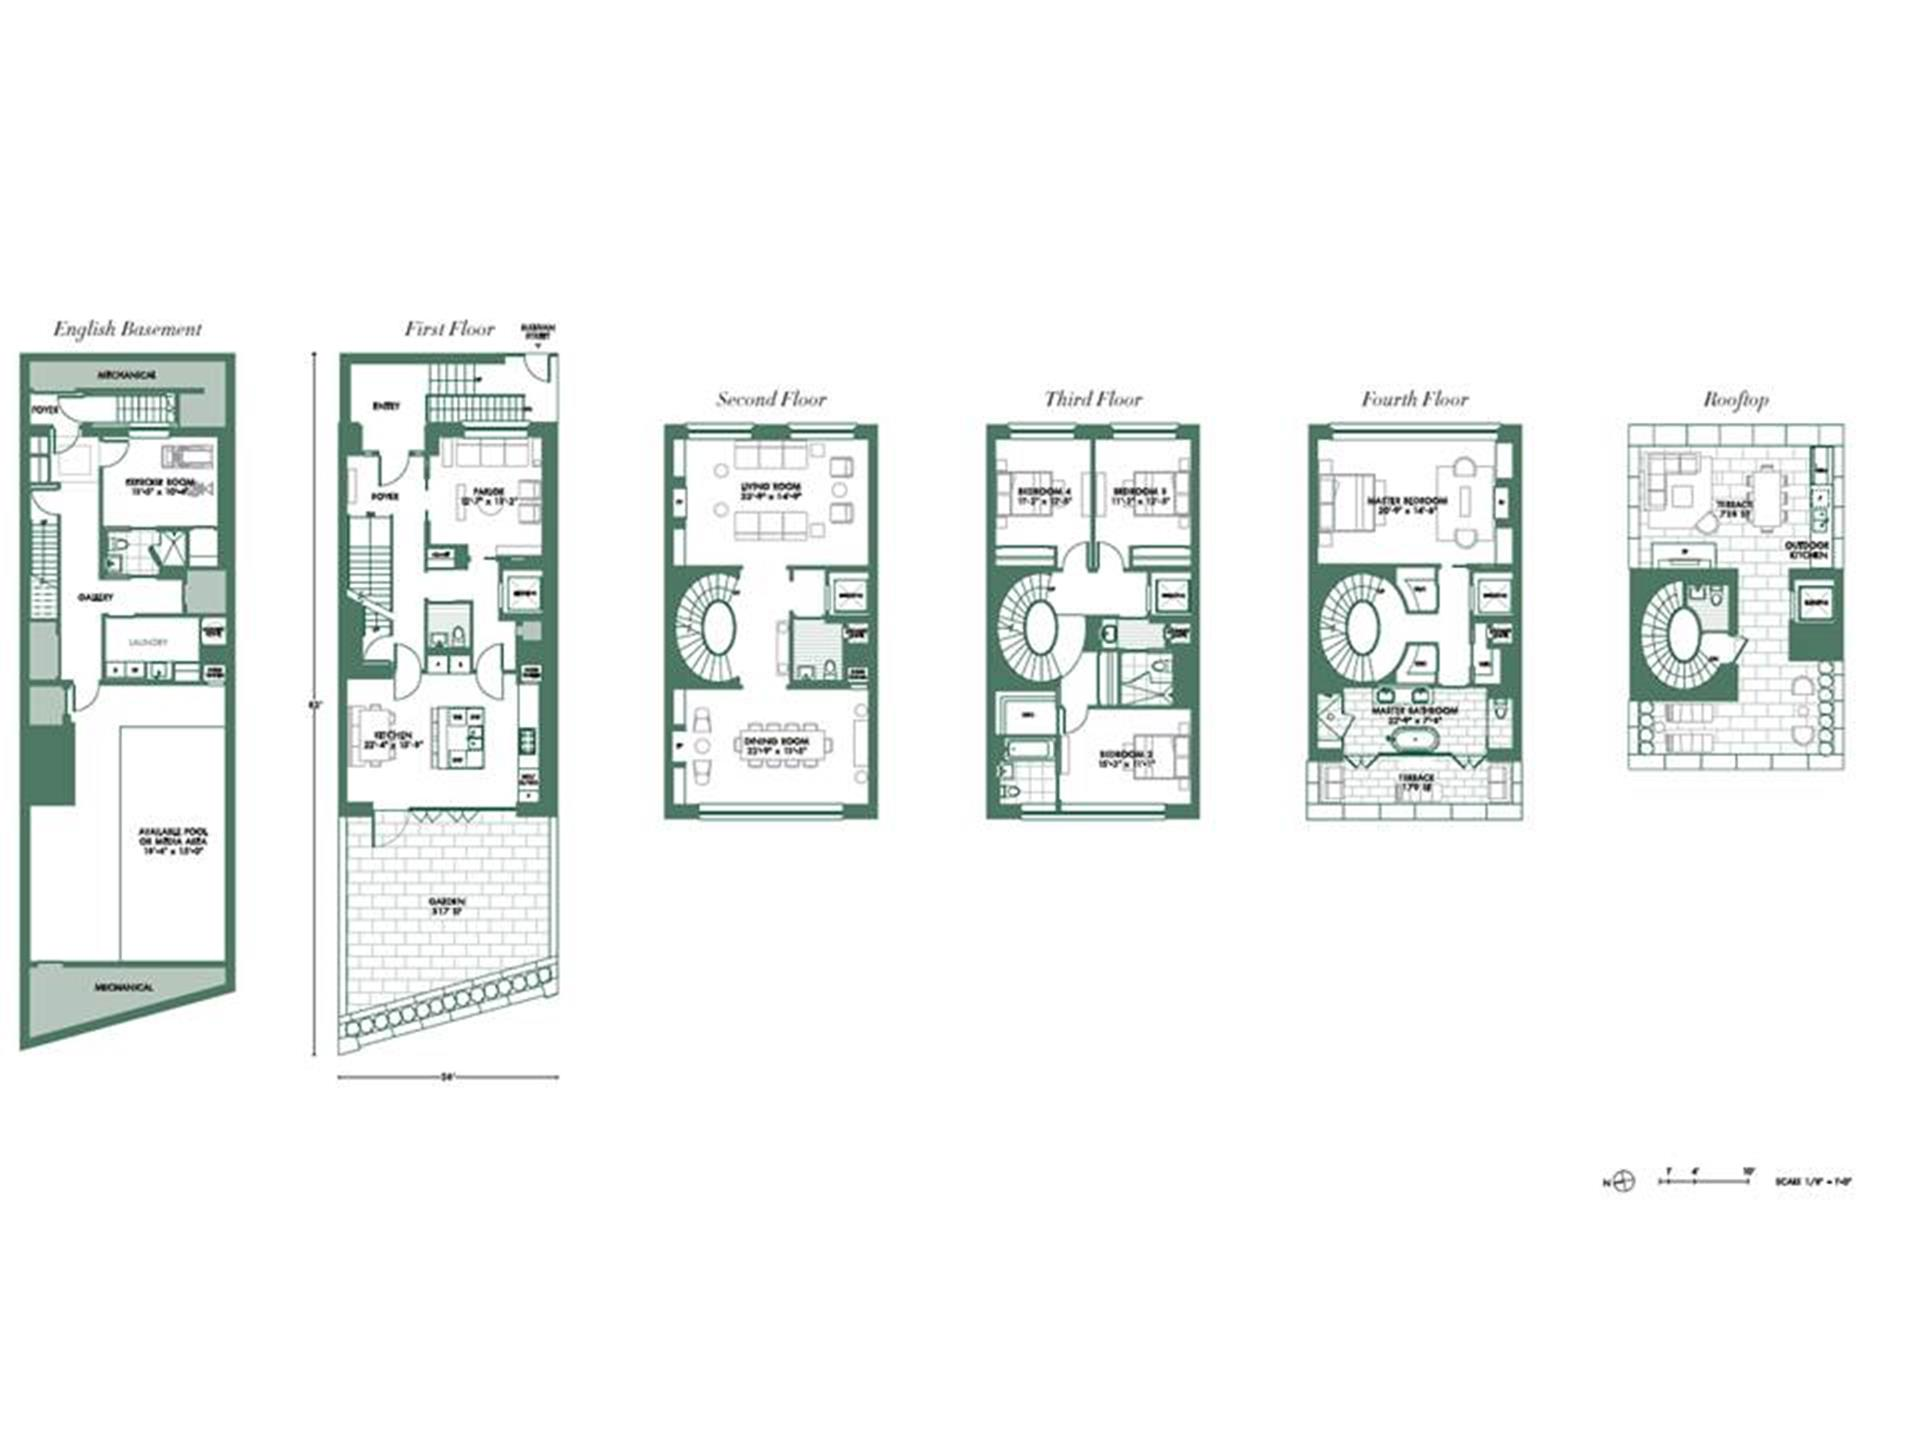 Floor plan of 30 Sullivan St - SoHo - Nolita, New York